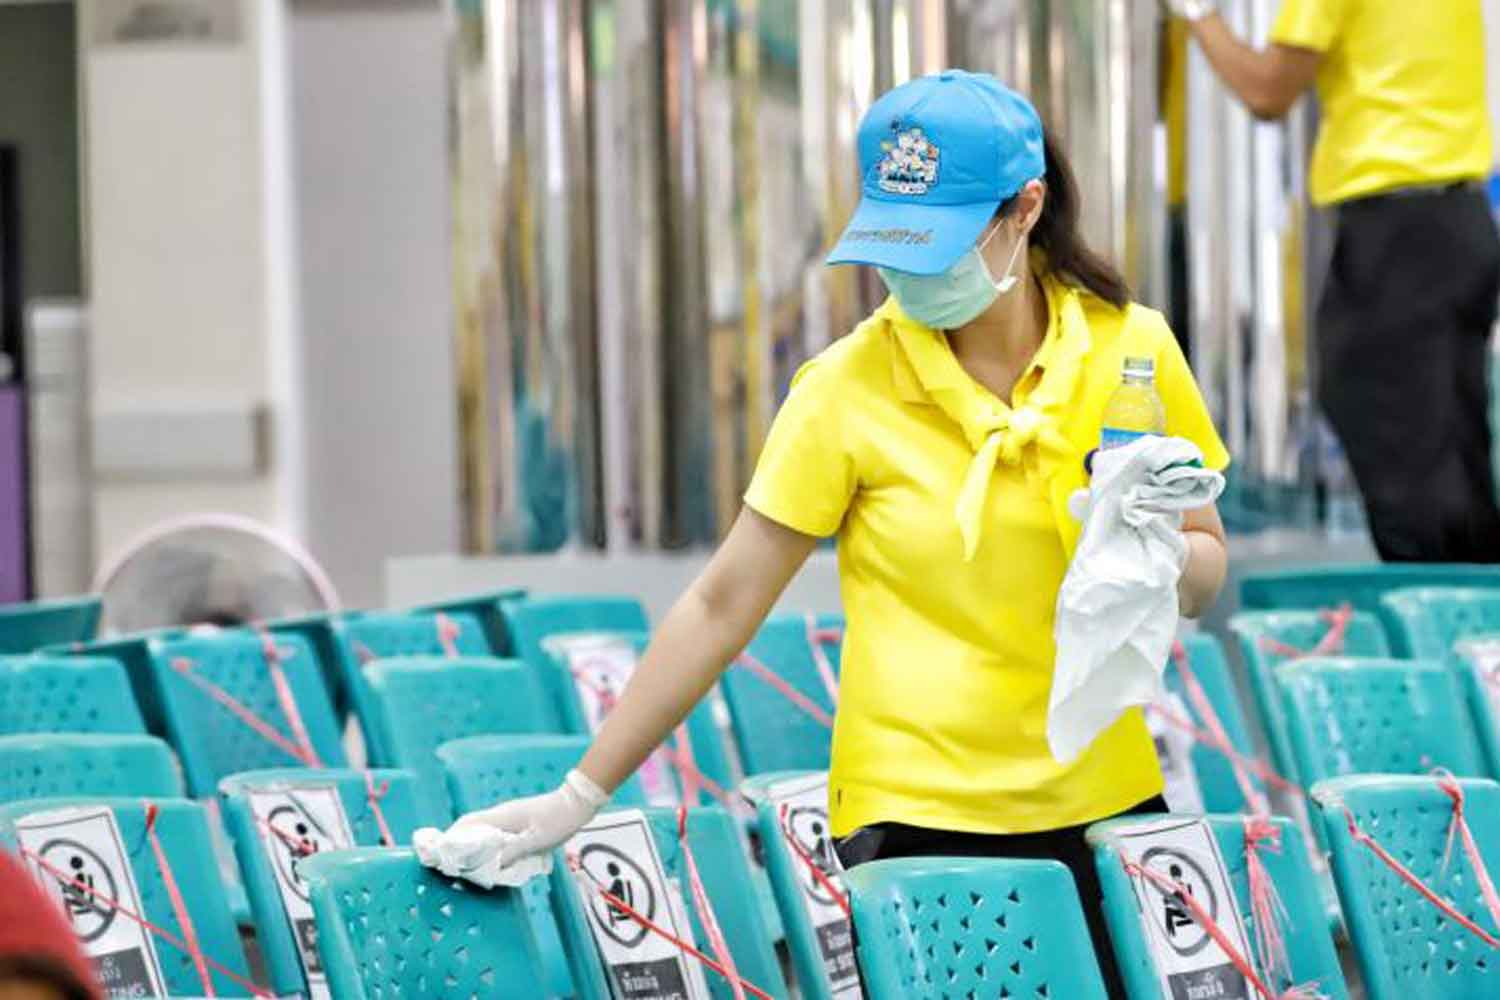 Volunteers disinfect chairs at Pathum Thani Hospital in Pathum Thani province, to help control Covid-19. (Photo: Pongpat Wongyala)